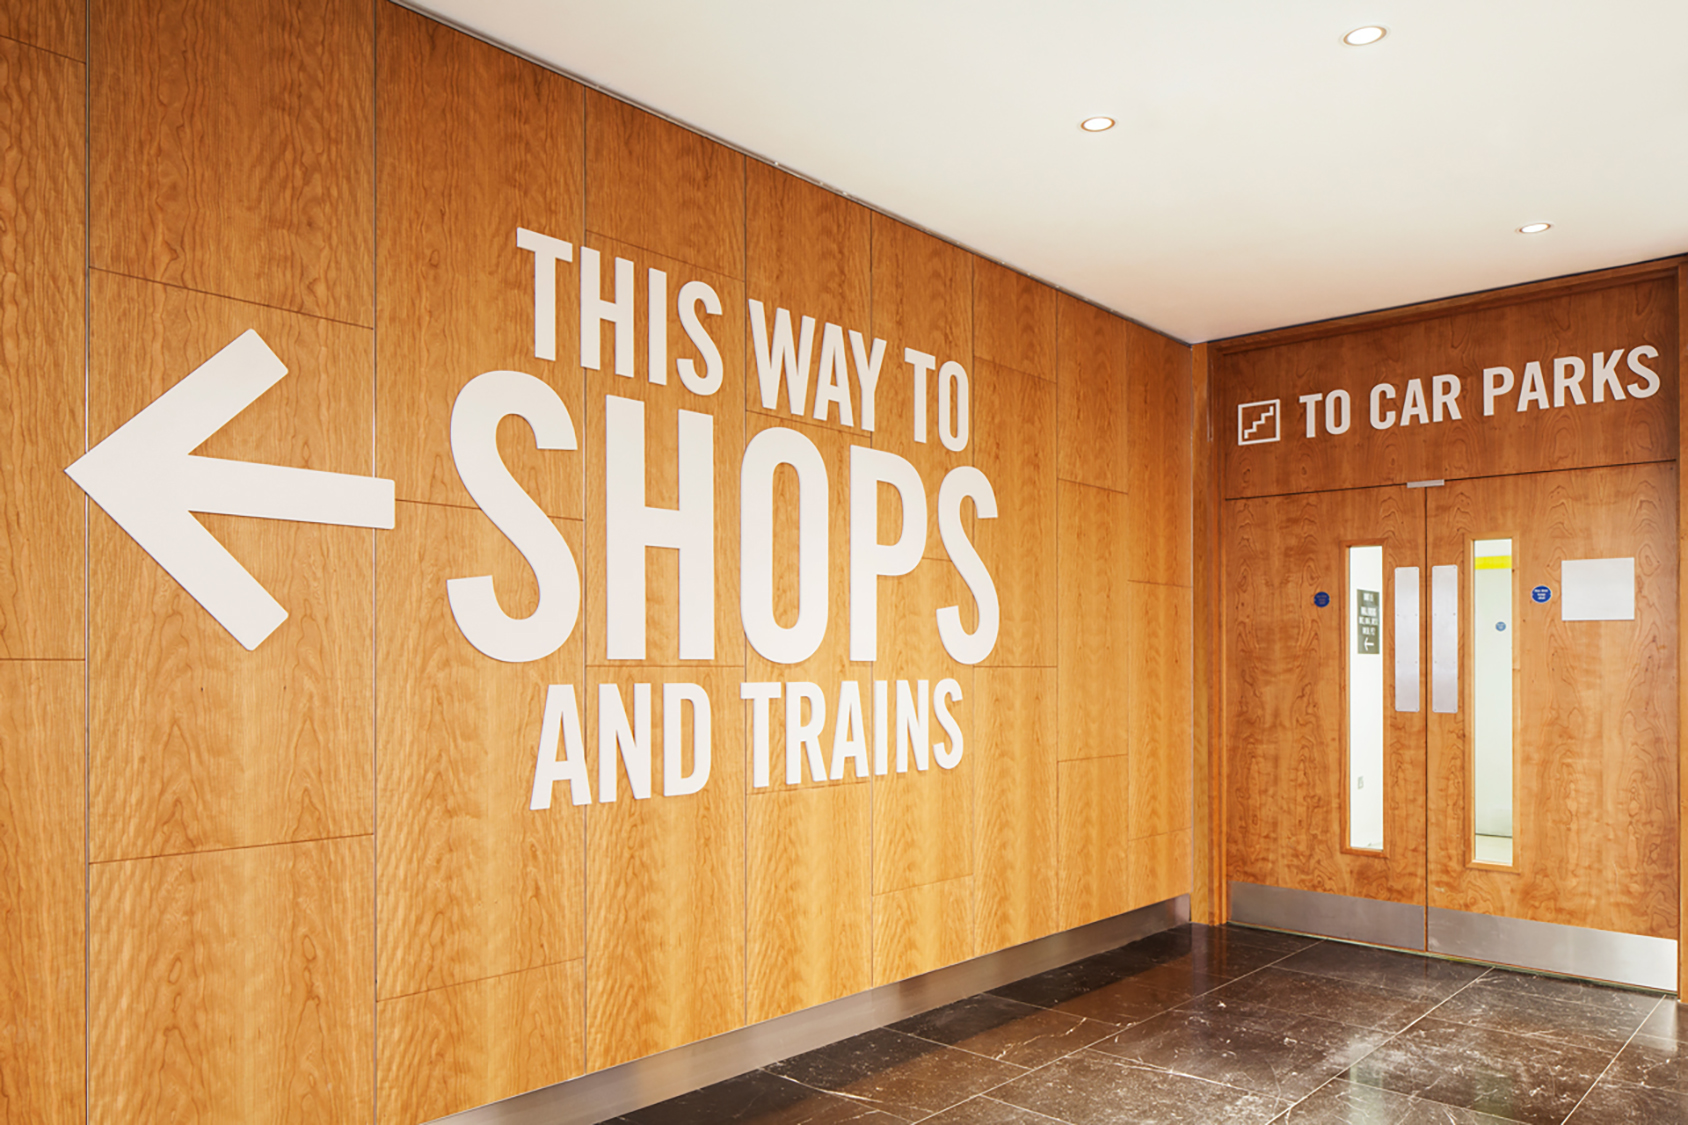 Wayfinding signage consultants – directions for shops and train